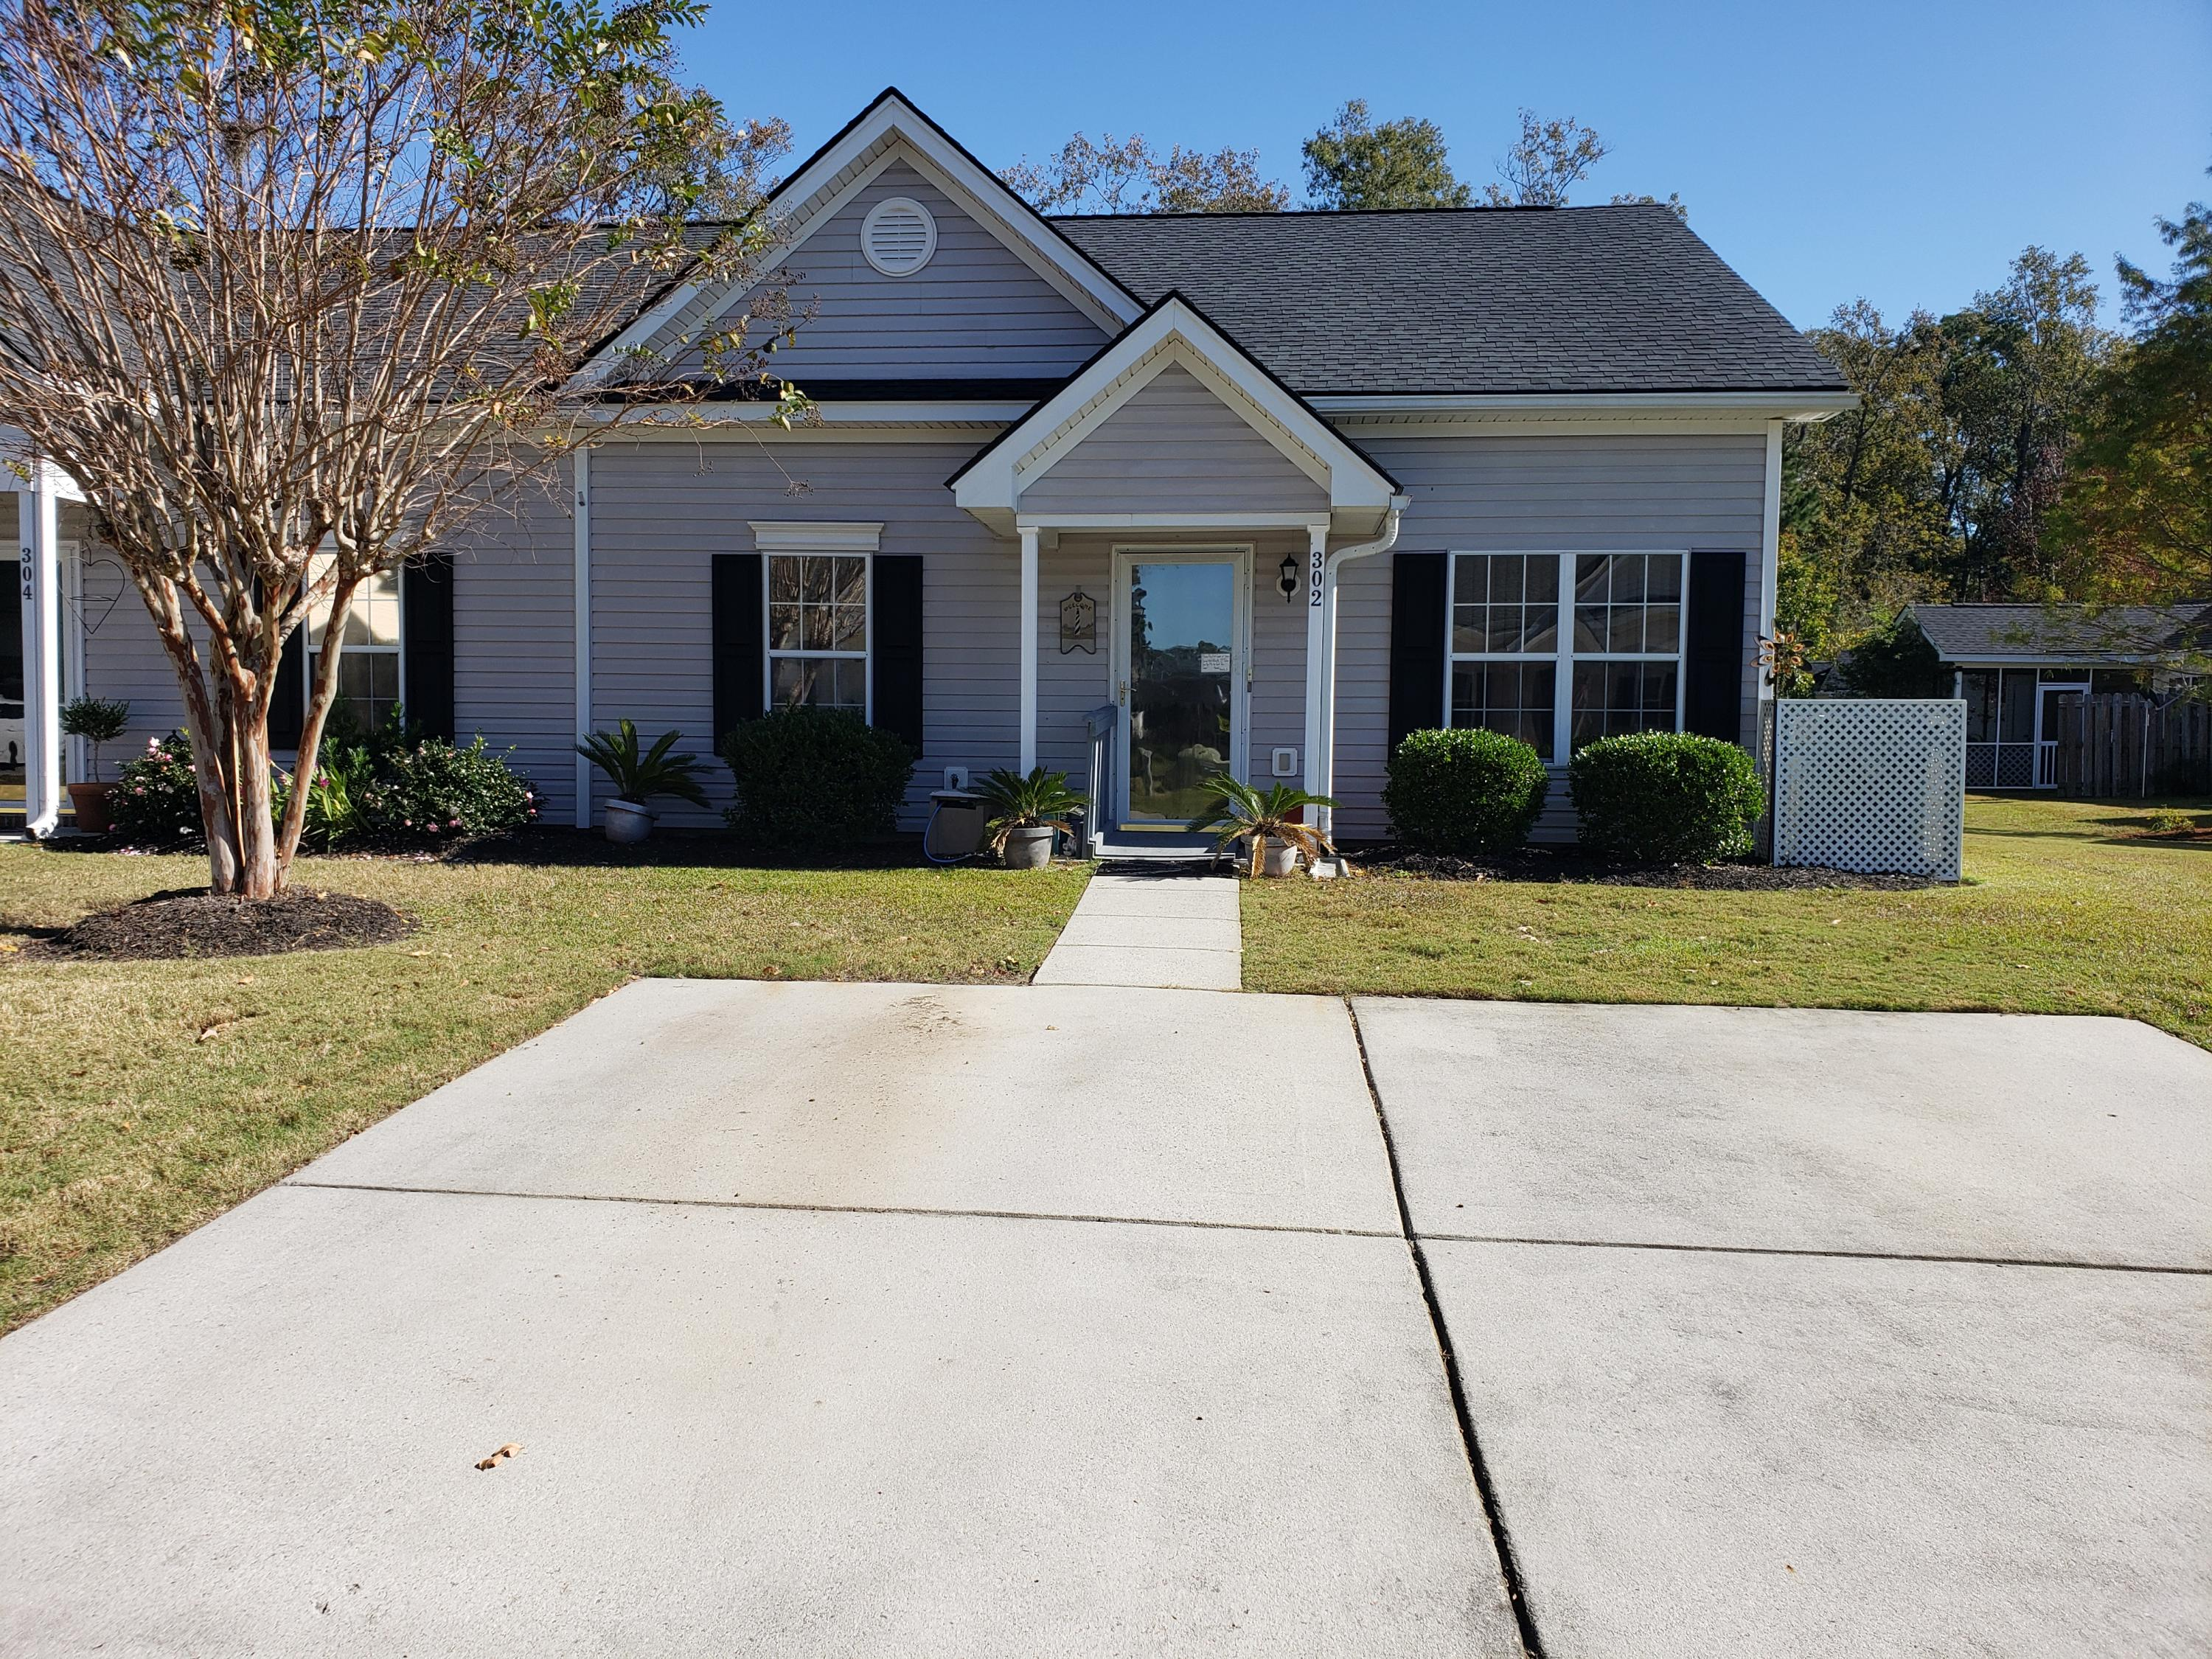 302 Dupont Way Summerville, Sc 29485